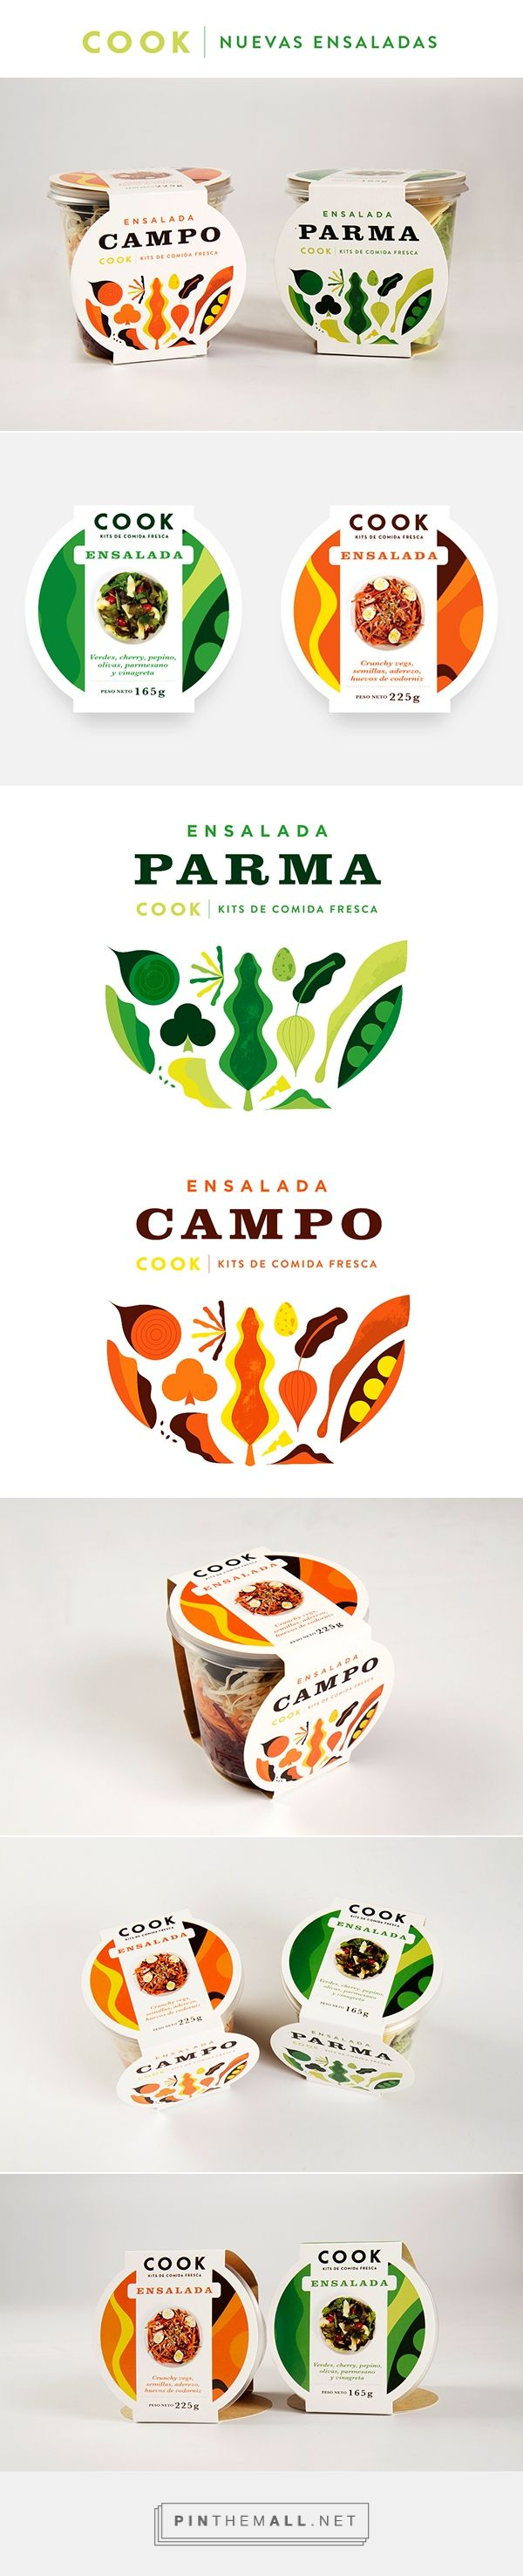 COOK ENSALADAS on Behance  photo+illustration in colourful packaging